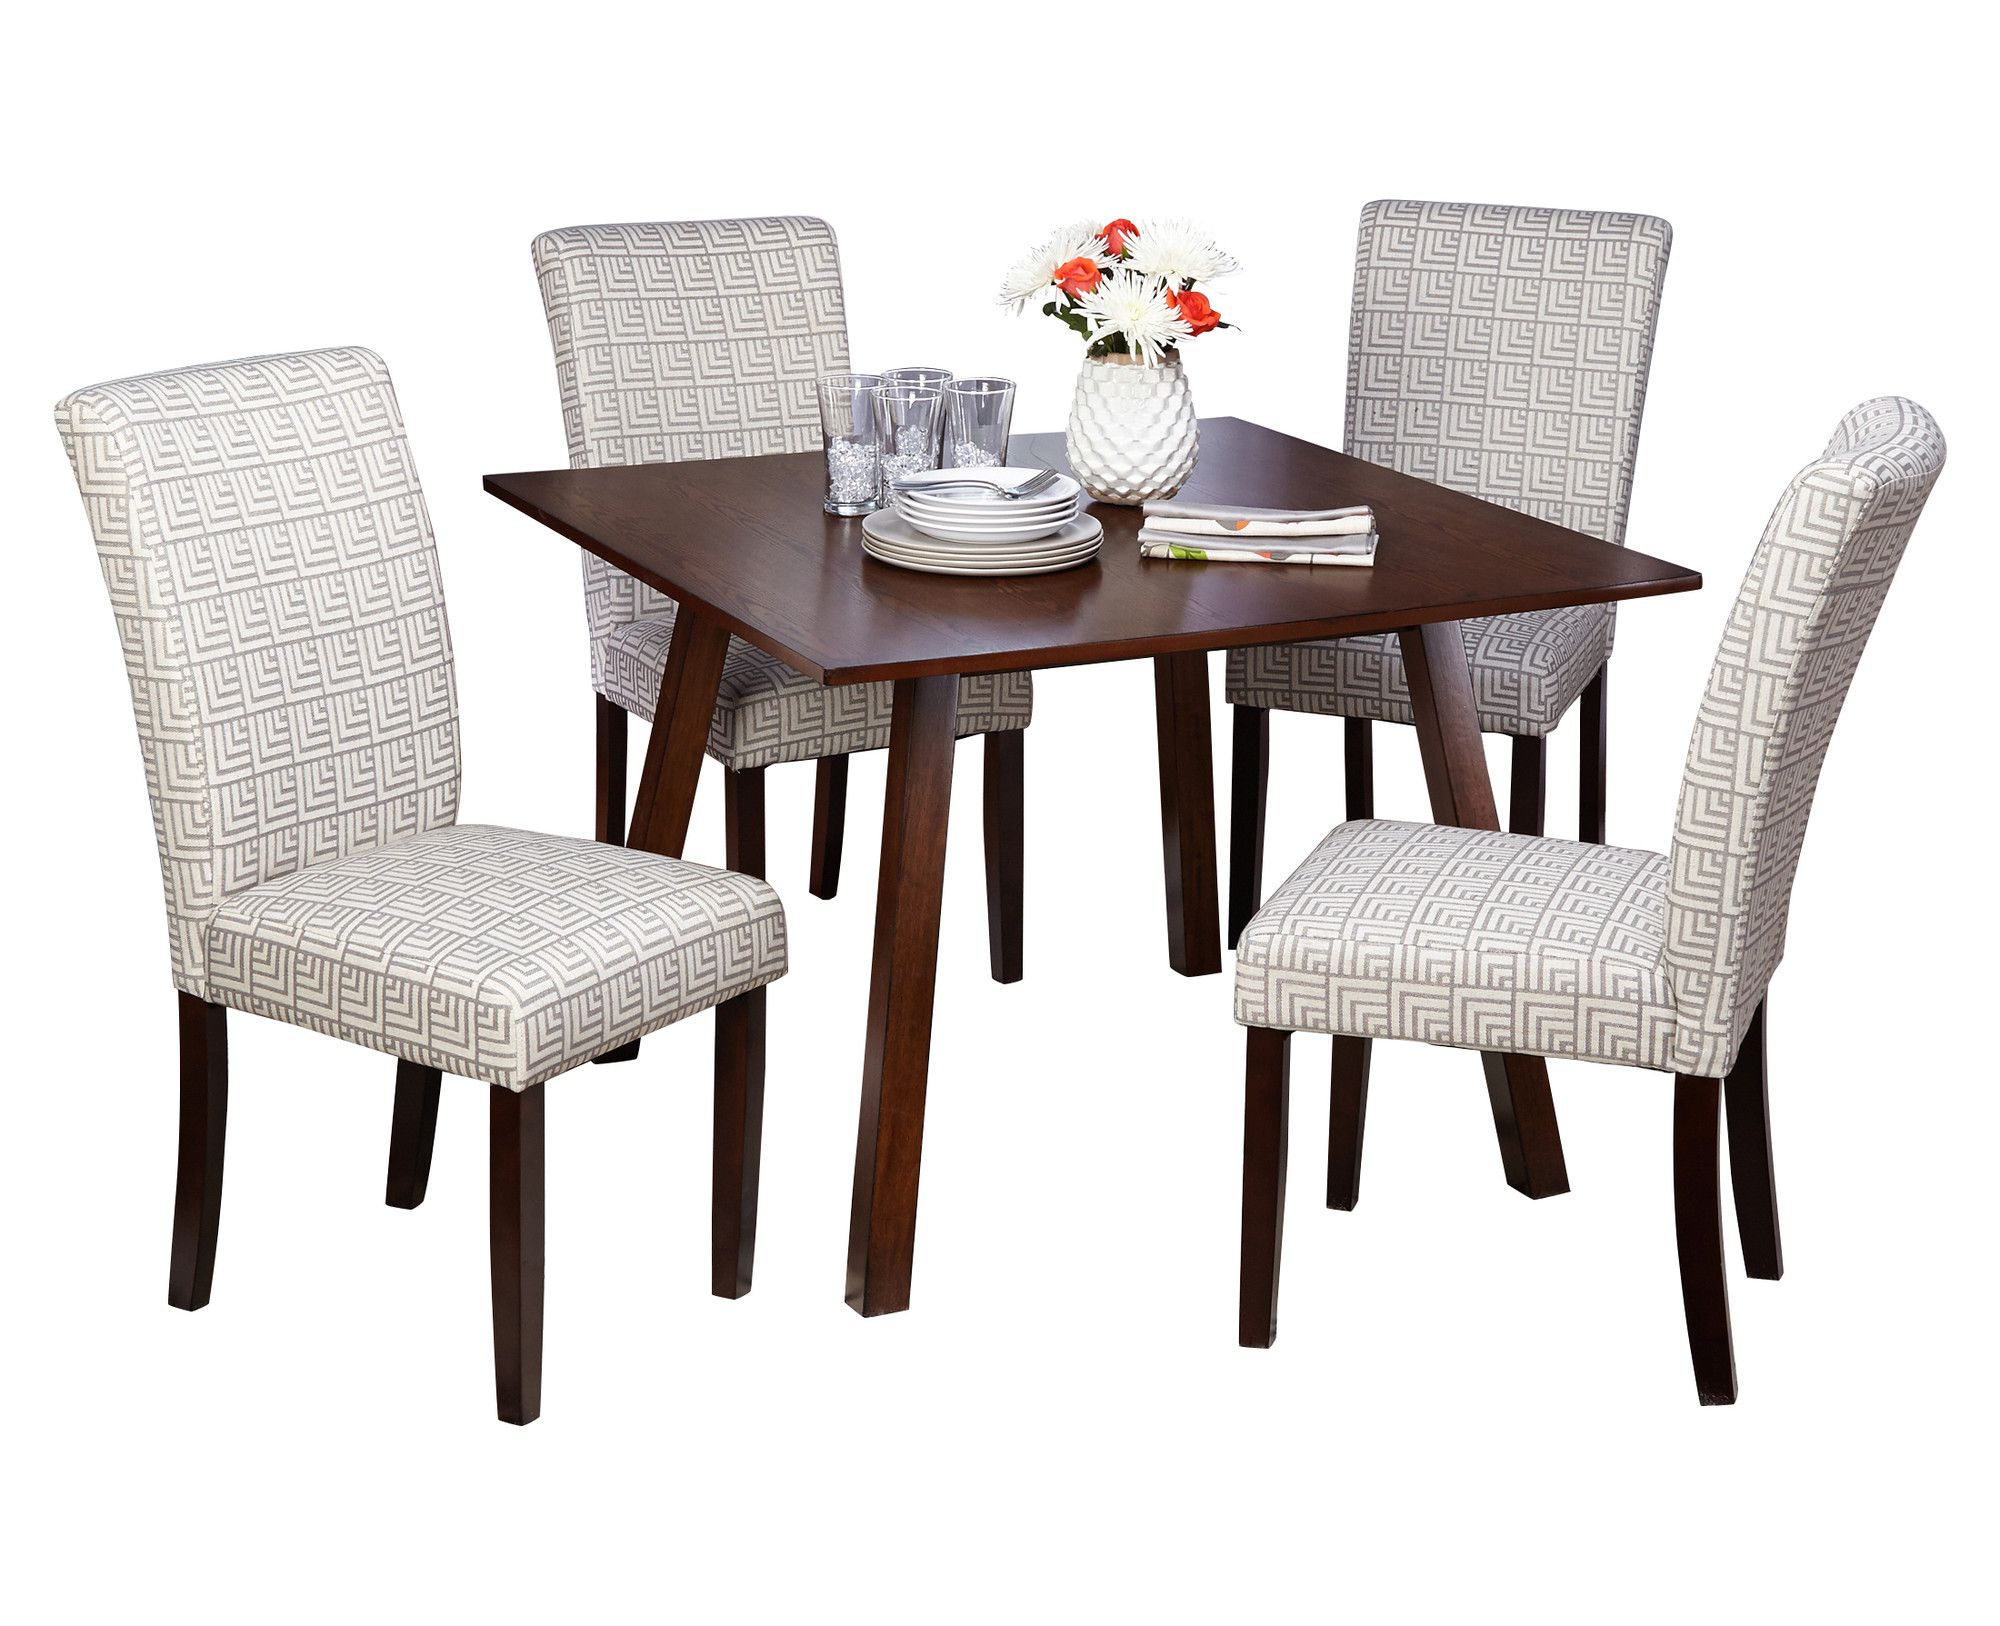 5 Piece Dining Set, Dining Within Newest Kaelin 5 Piece Dining Sets (View 2 of 25)